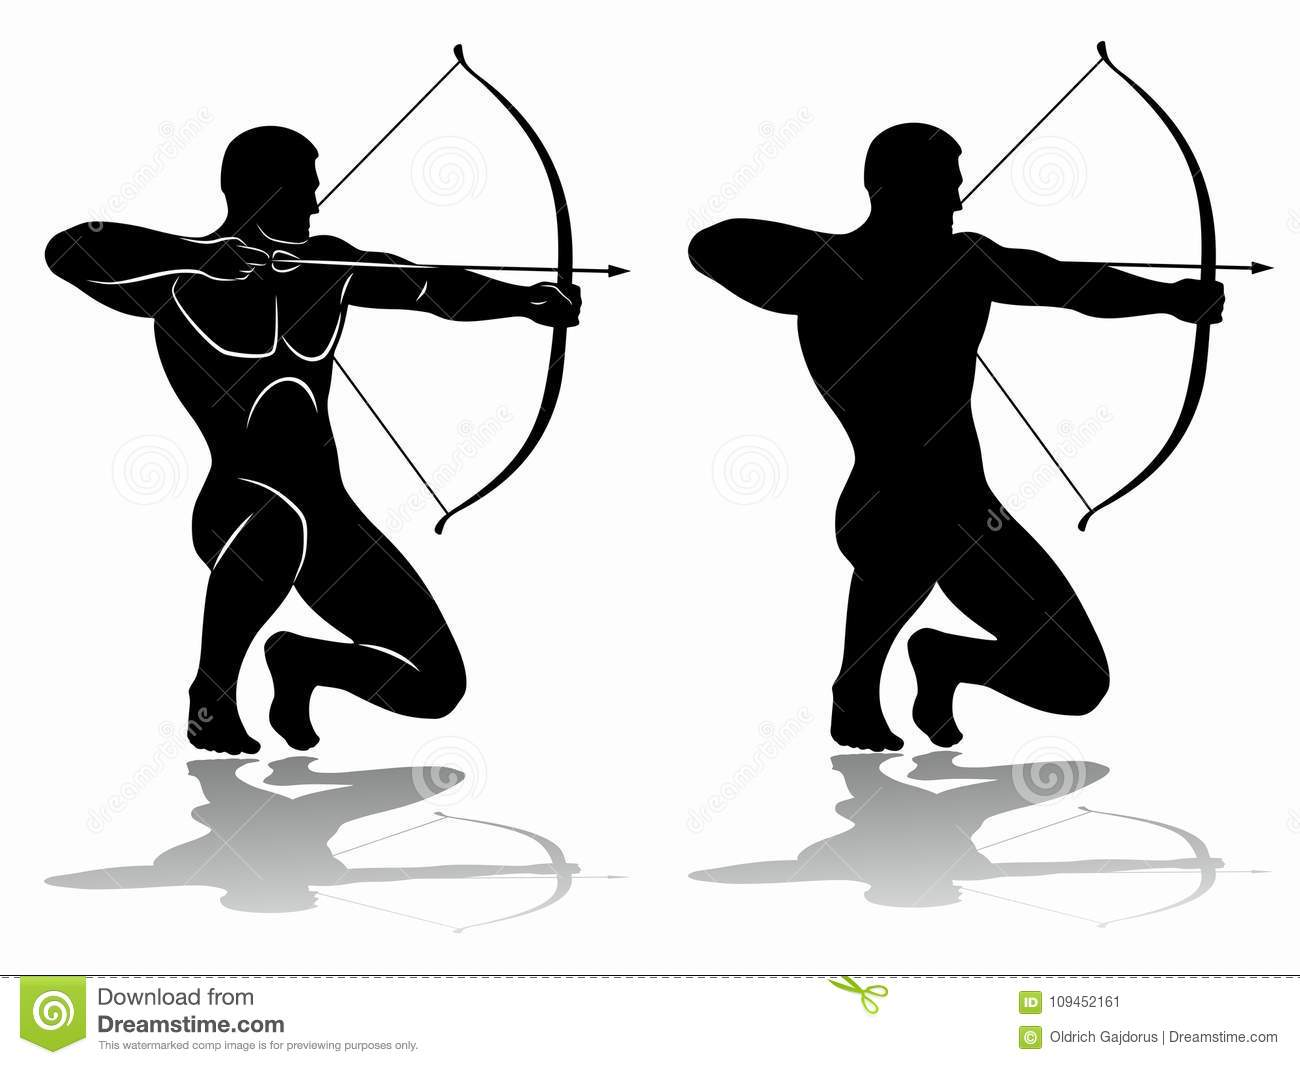 Archer silhouette, vector drawing